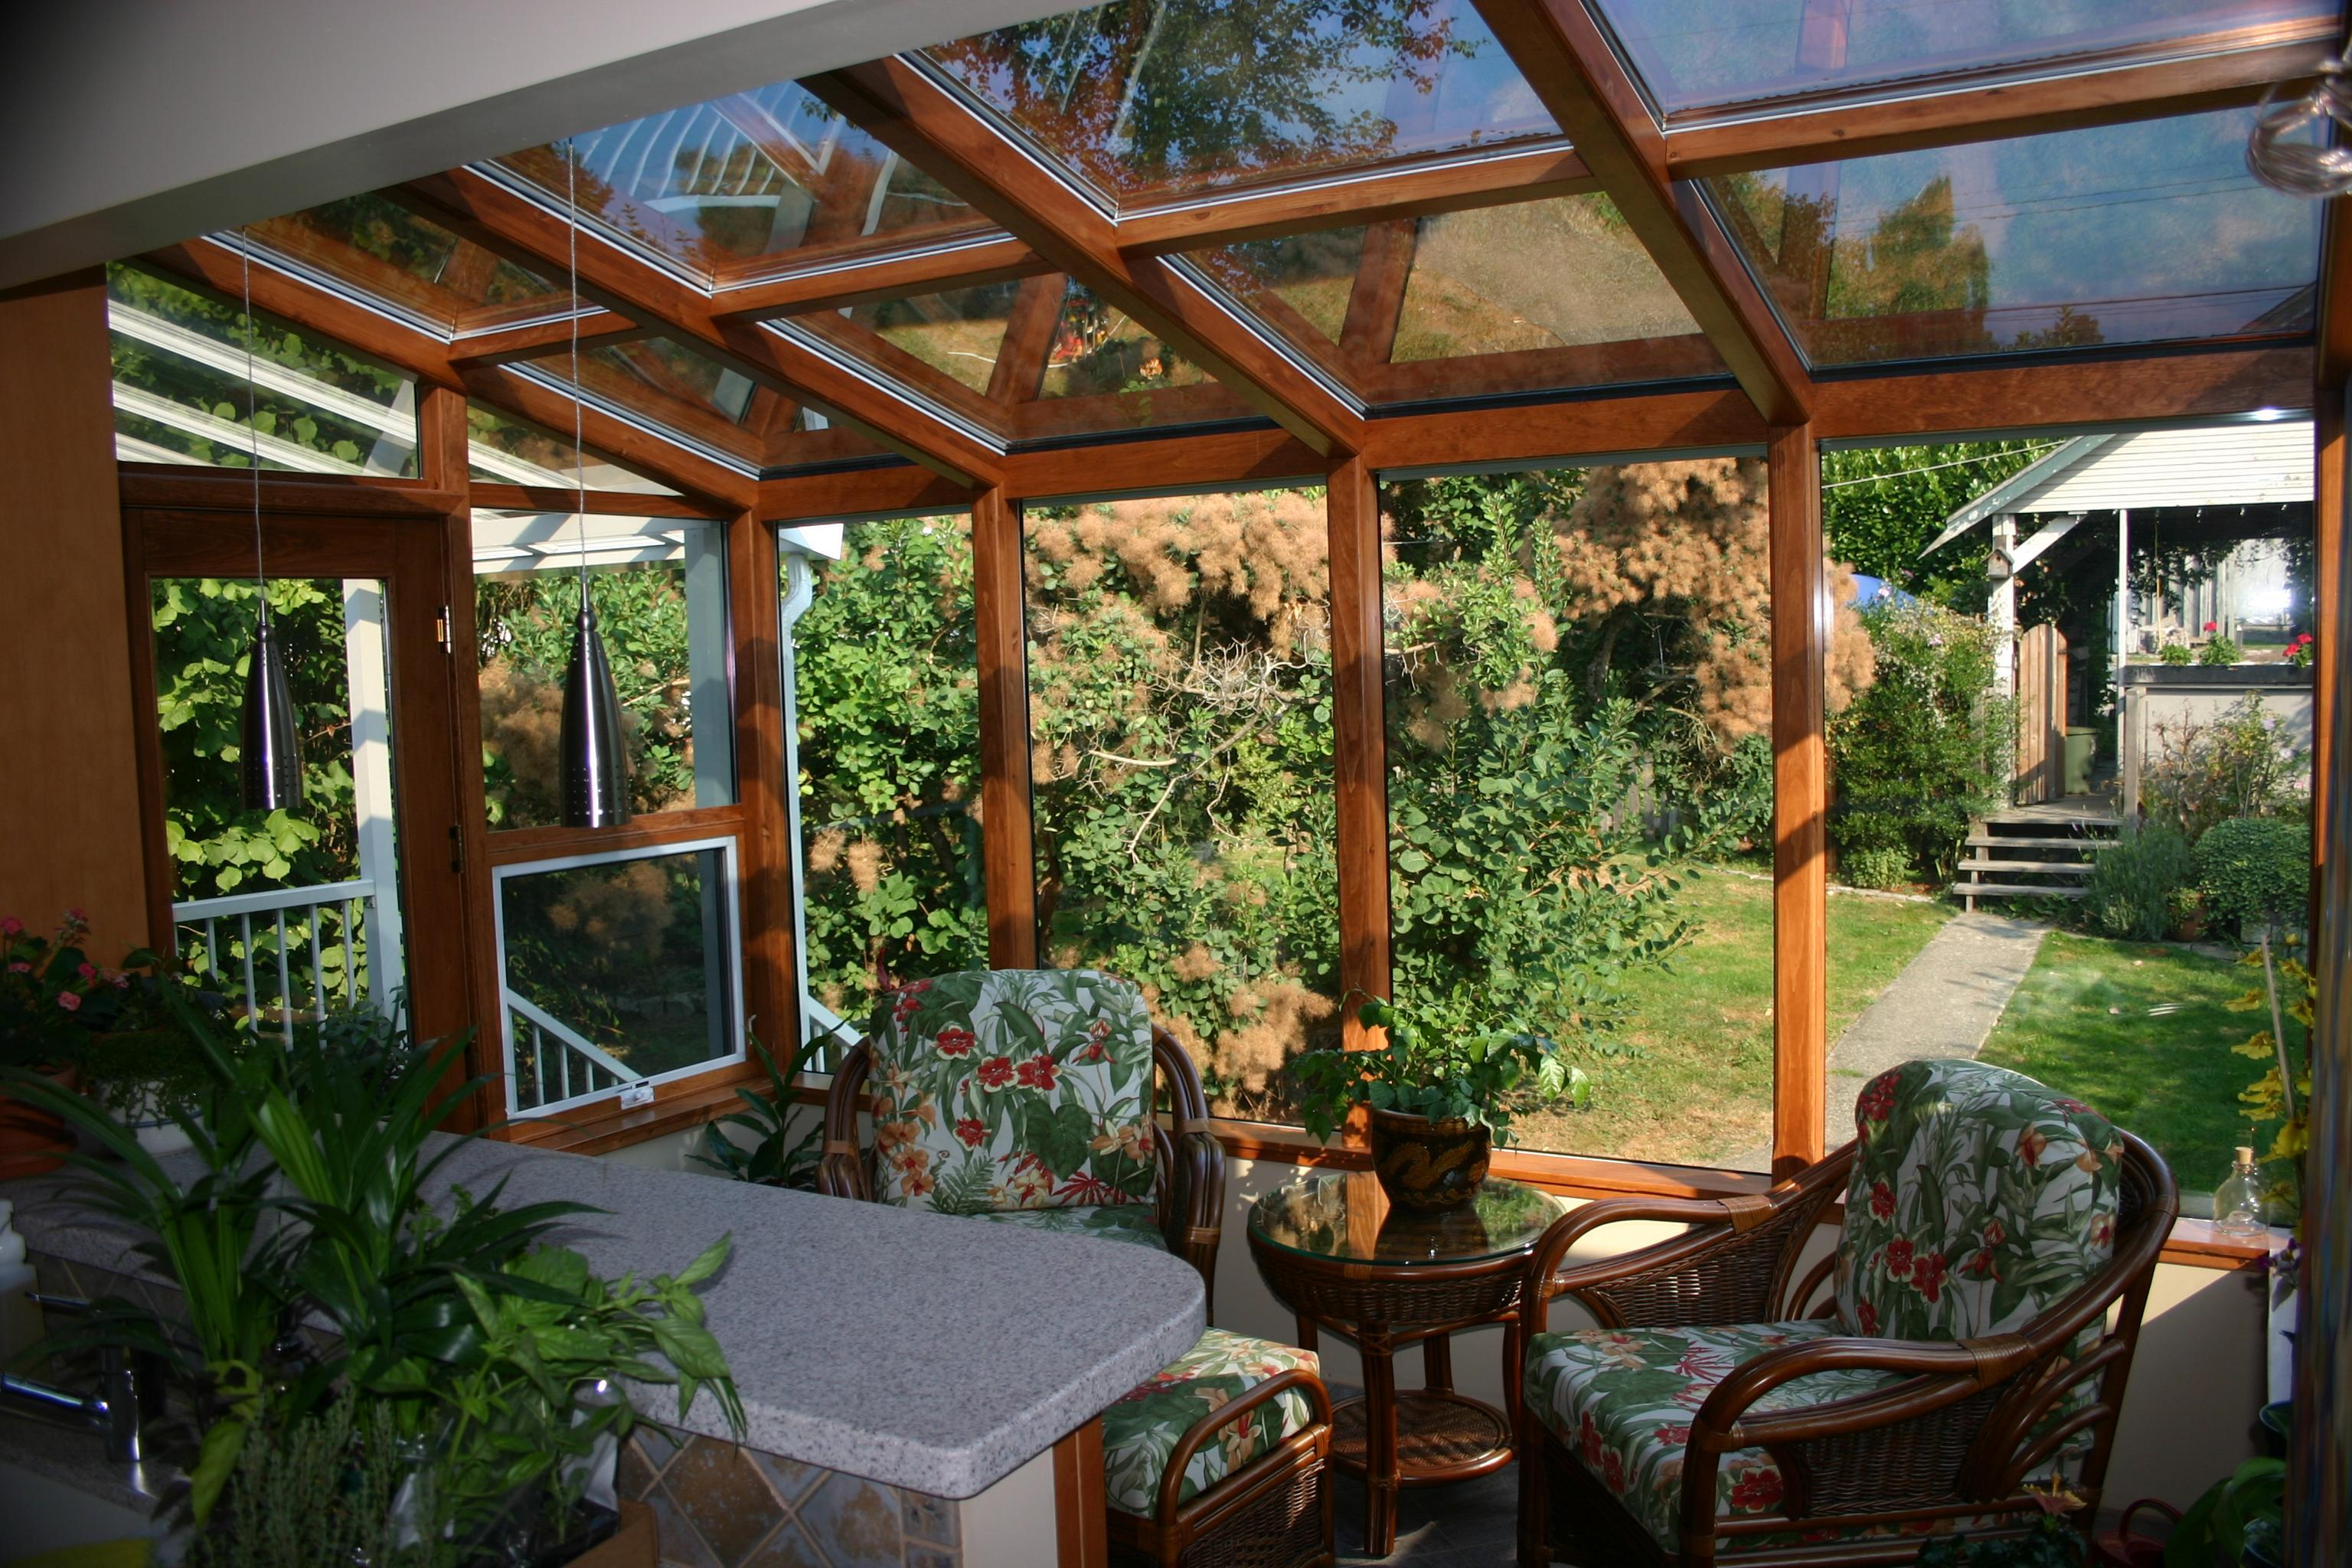 Four Seasons Sunrooms in Port Coquitlam: This sunroom adds a sitting area off the kitchen where space was limited